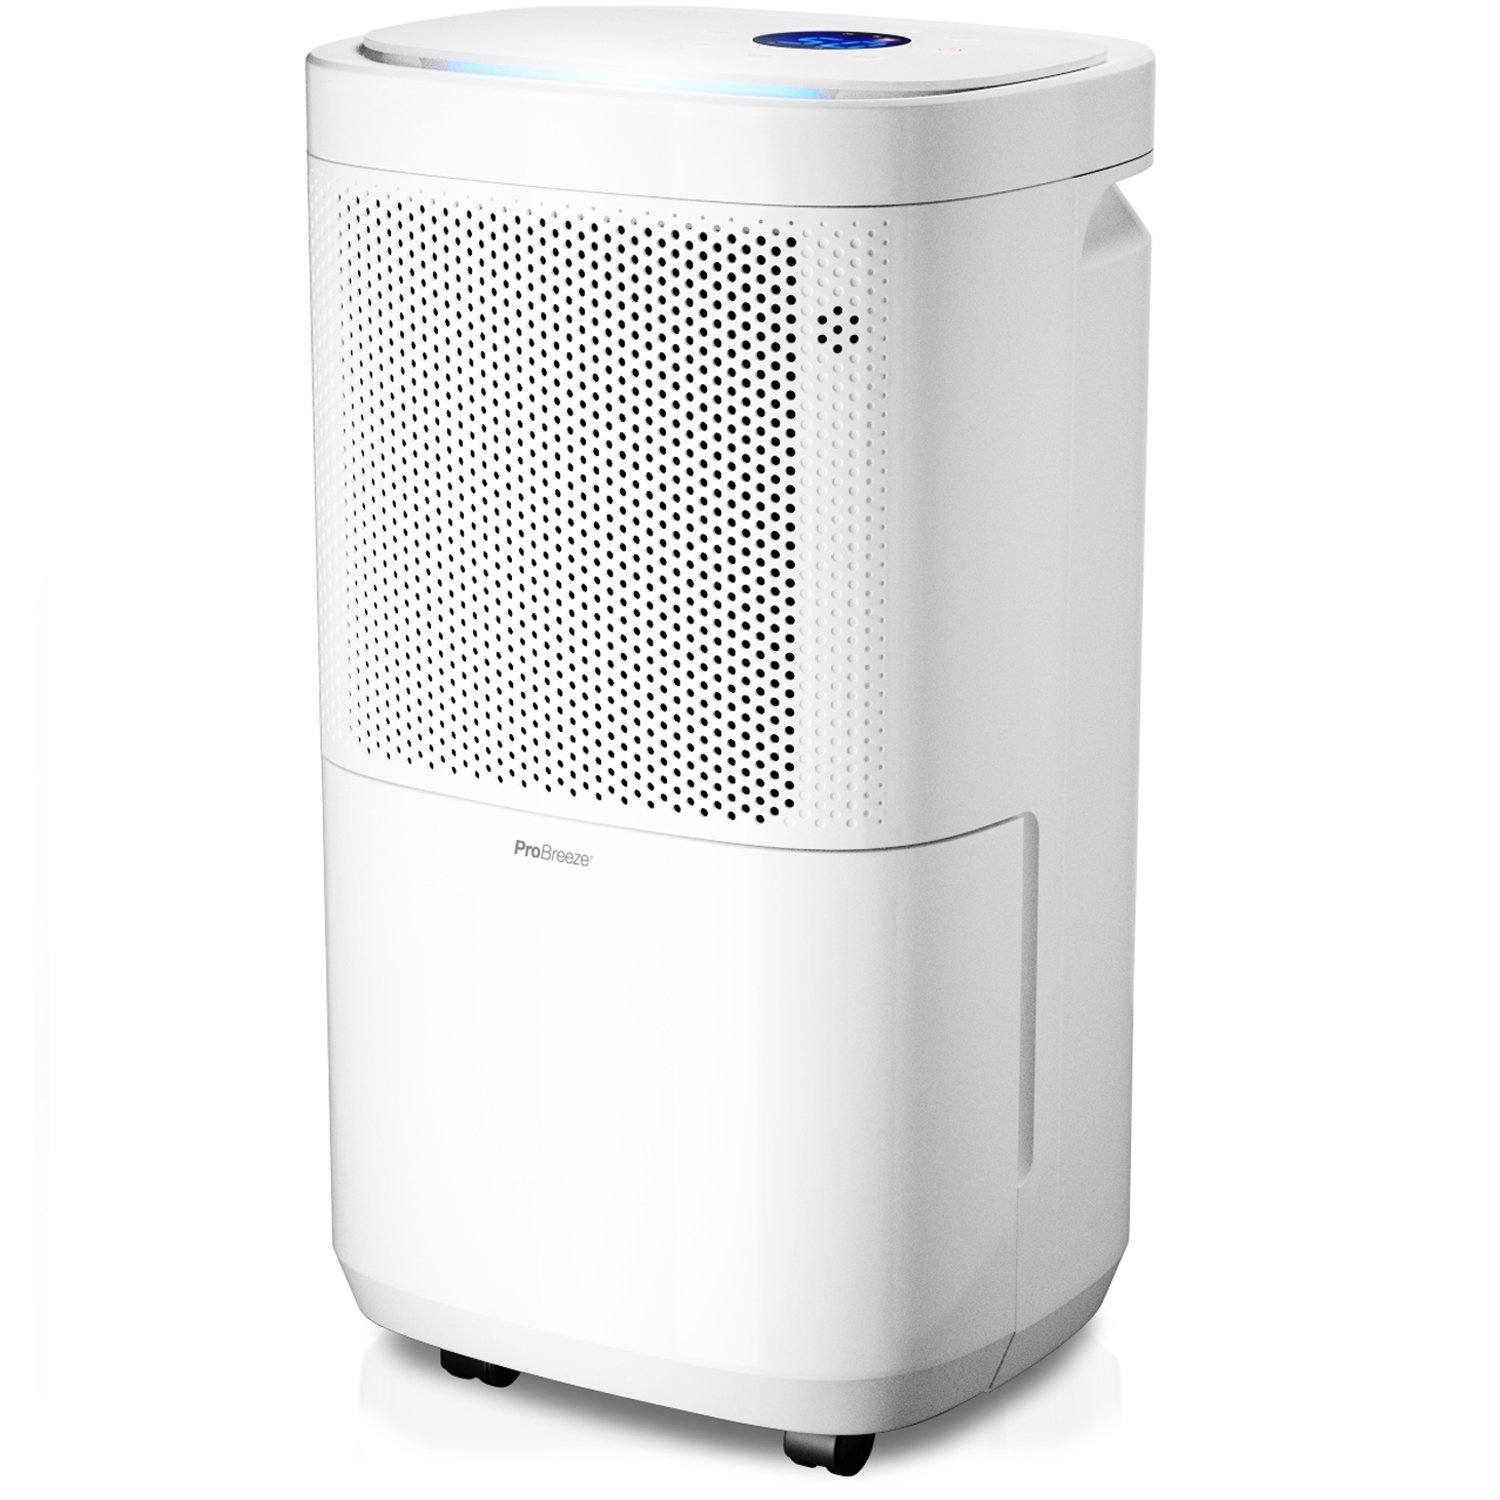 Déshumidificateur Pro Breeze 12L